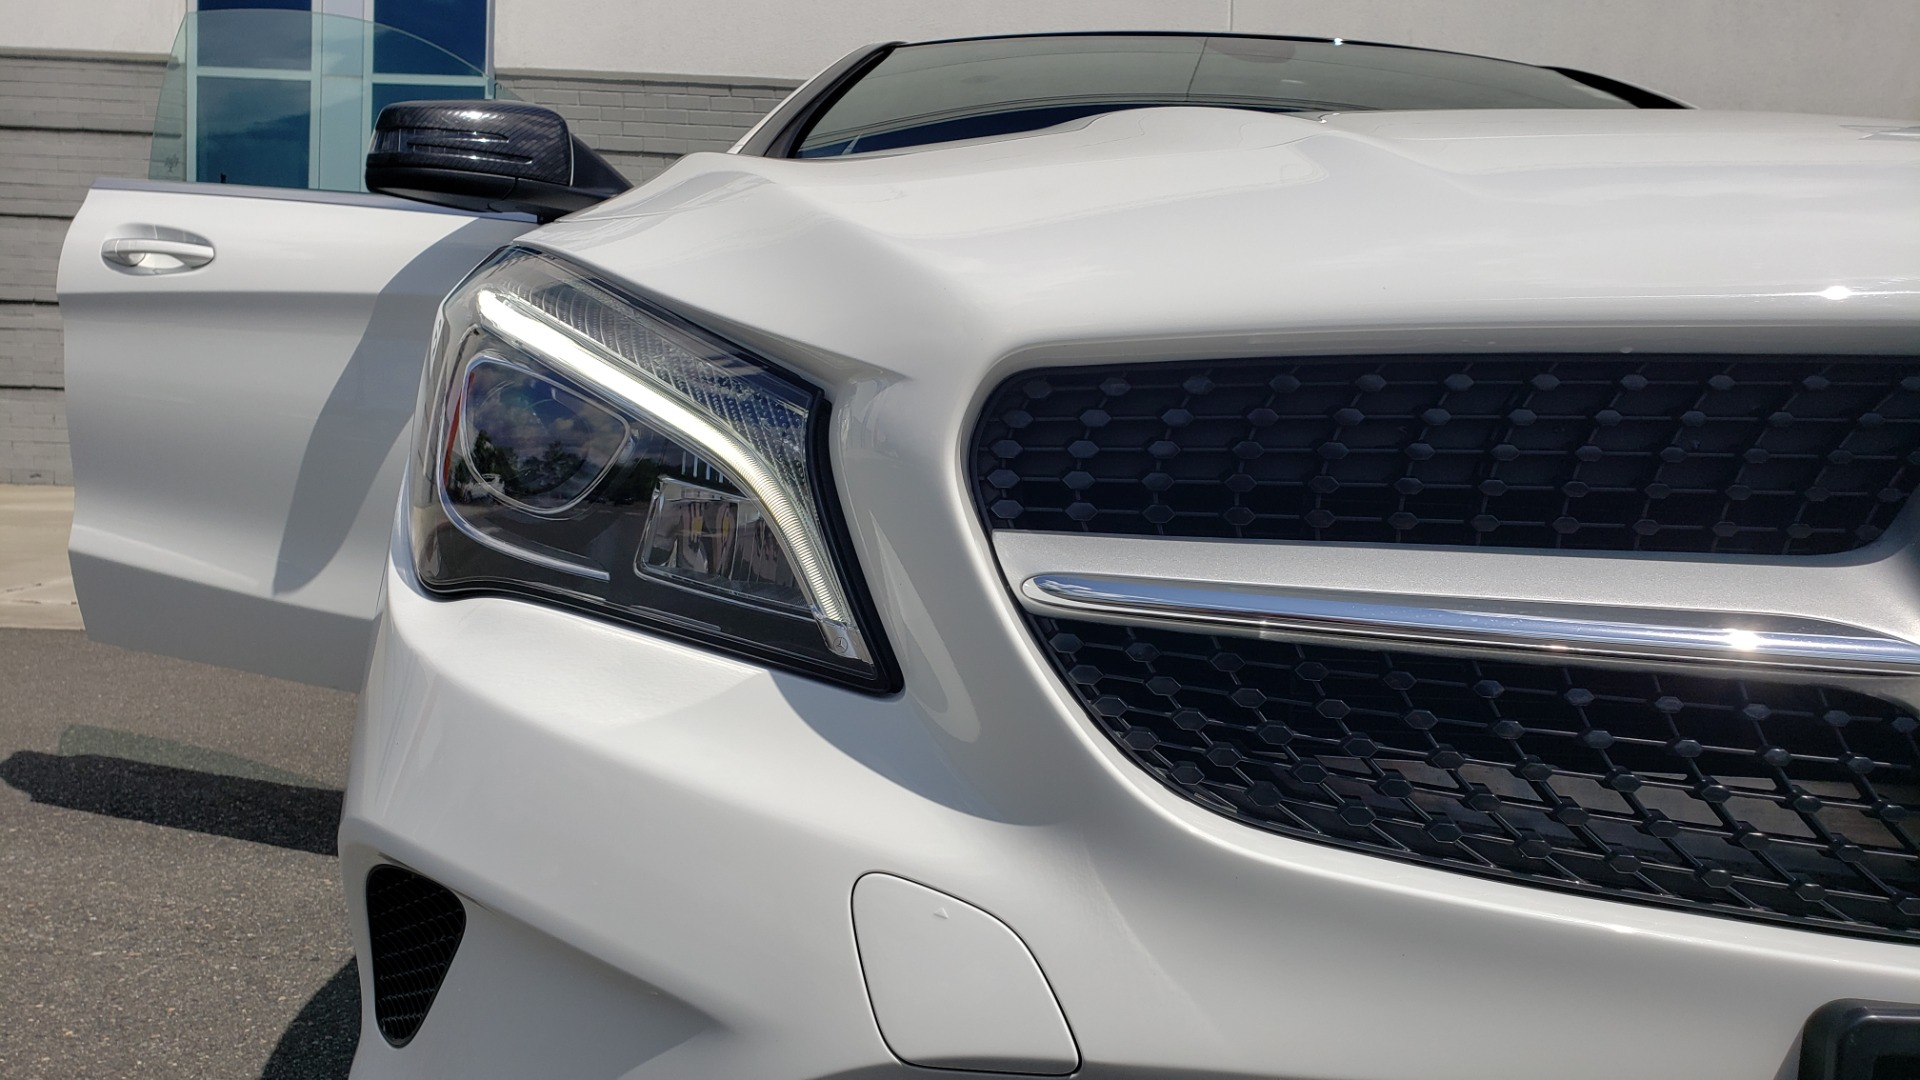 Used 2018 Mercedes-Benz CLA 250 4MATIC COUPE / PREMIUM / PANO-ROOF / APPLE / REARVIEW for sale Sold at Formula Imports in Charlotte NC 28227 24